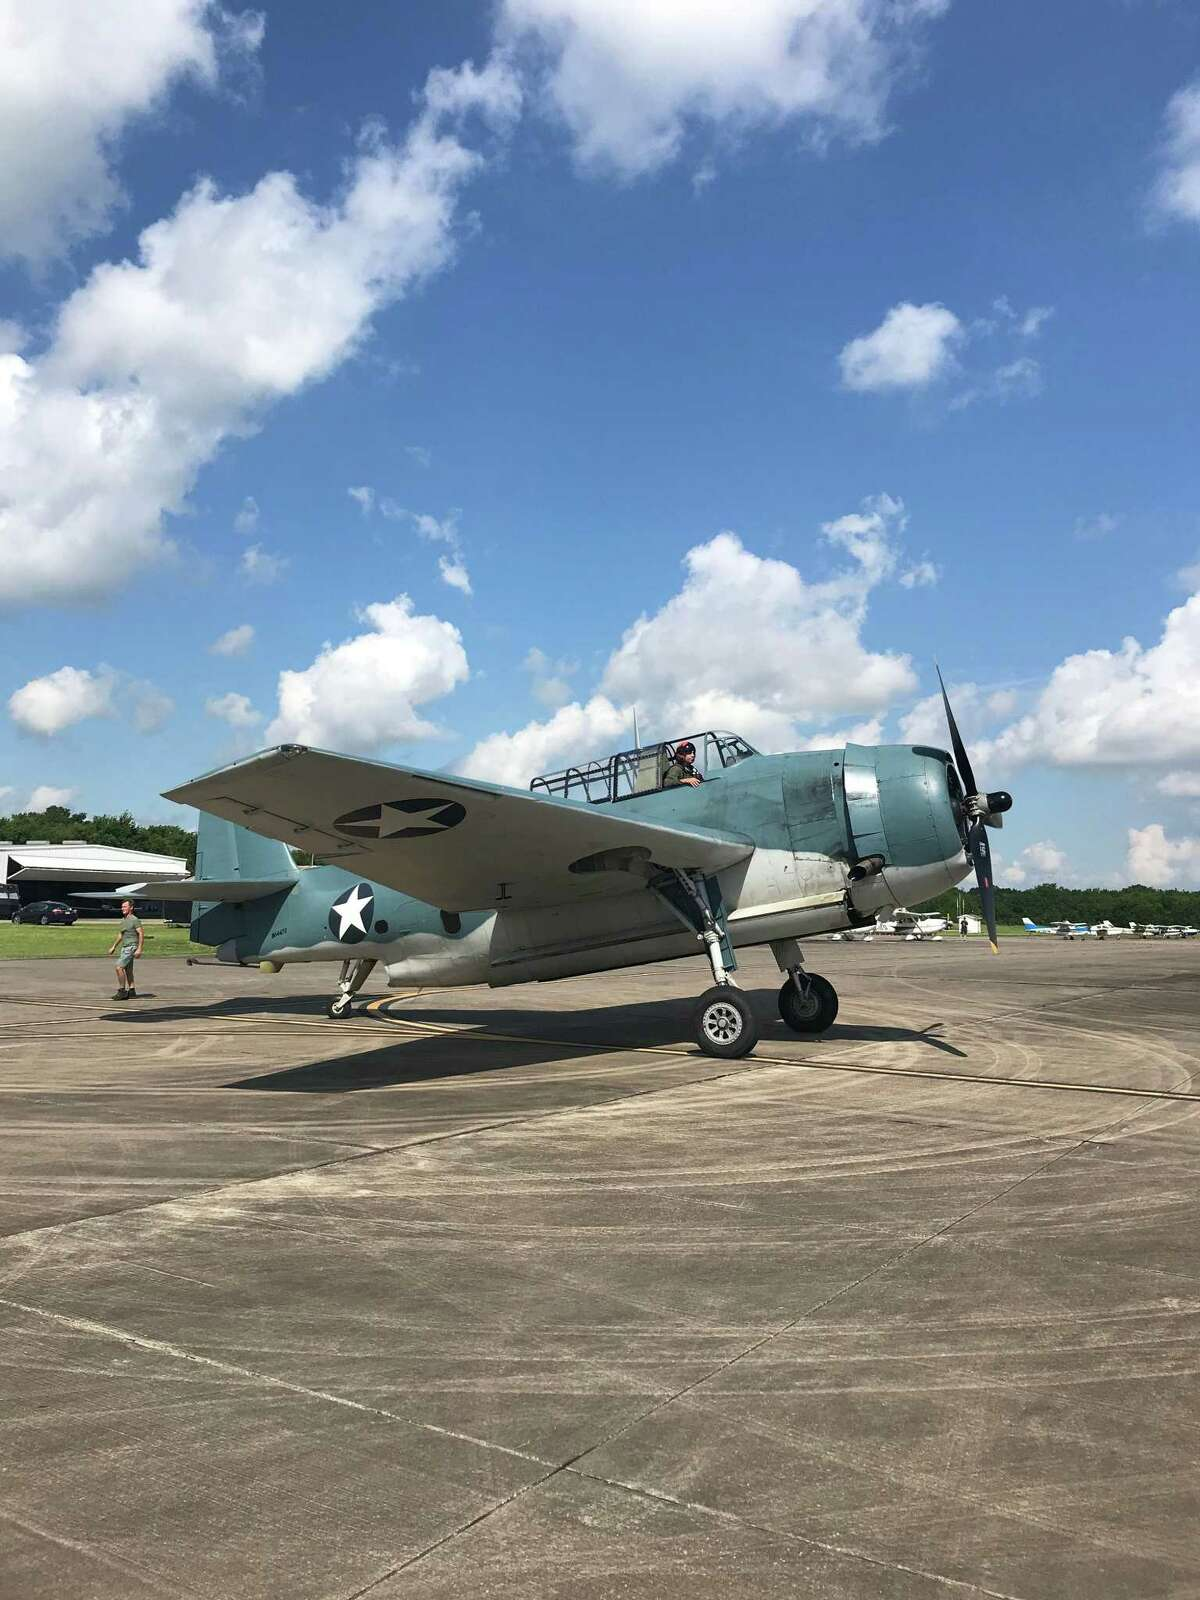 This TBM Avenger returns to Lone Star Flight Museum on Friday, Oct. 2, after a restoration. The aircraft is modeled after